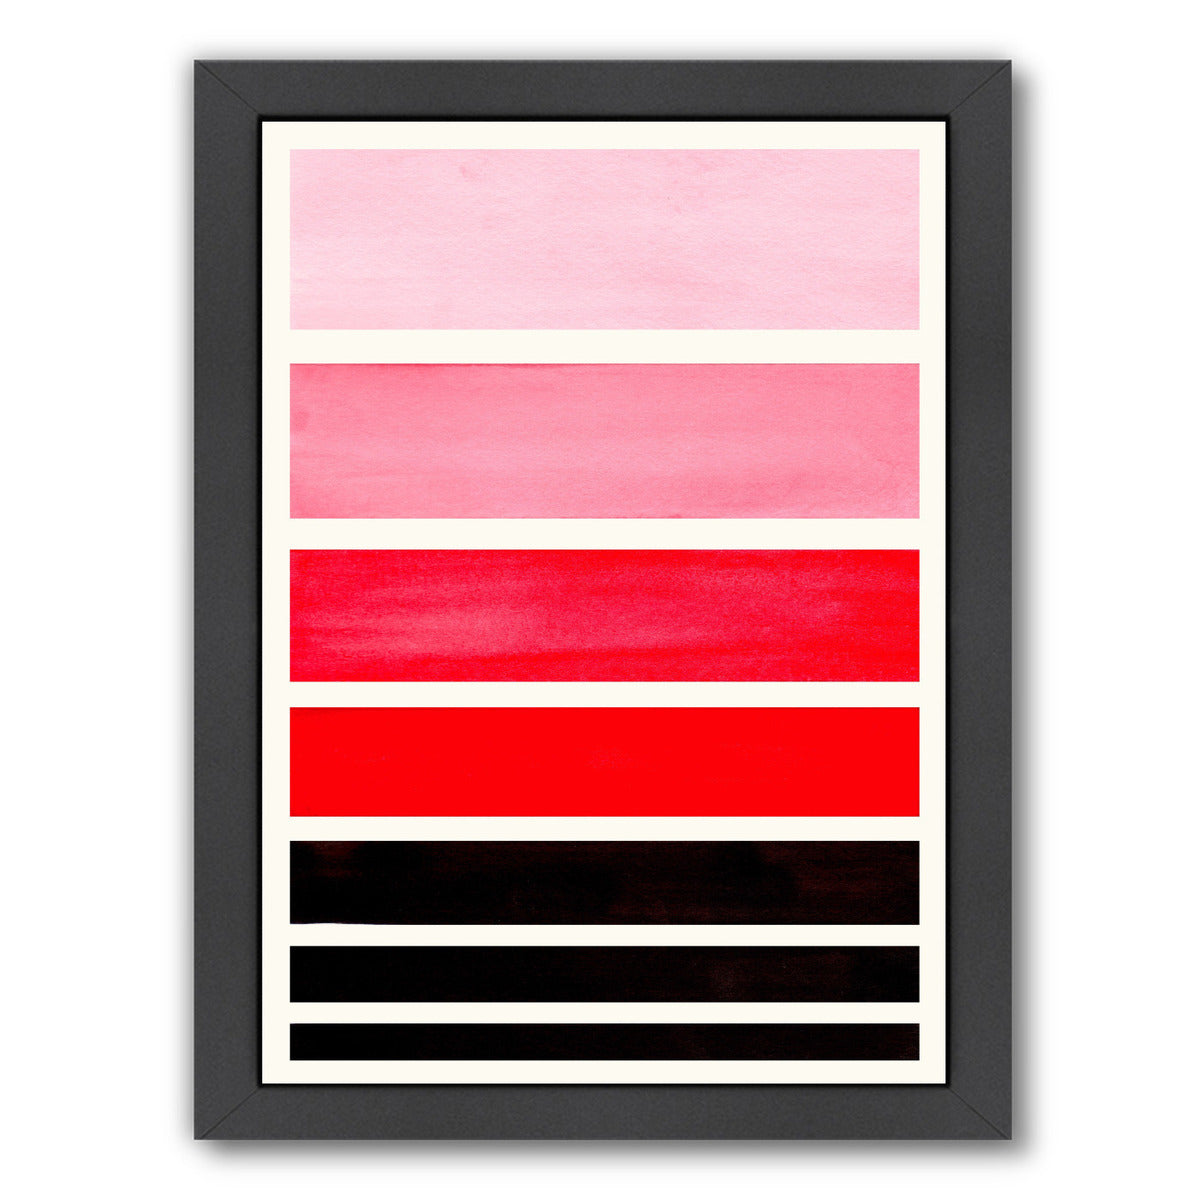 Red Staggered Stripes By Ejaaz Haniff - Black Framed Print - Wall Art - Americanflat